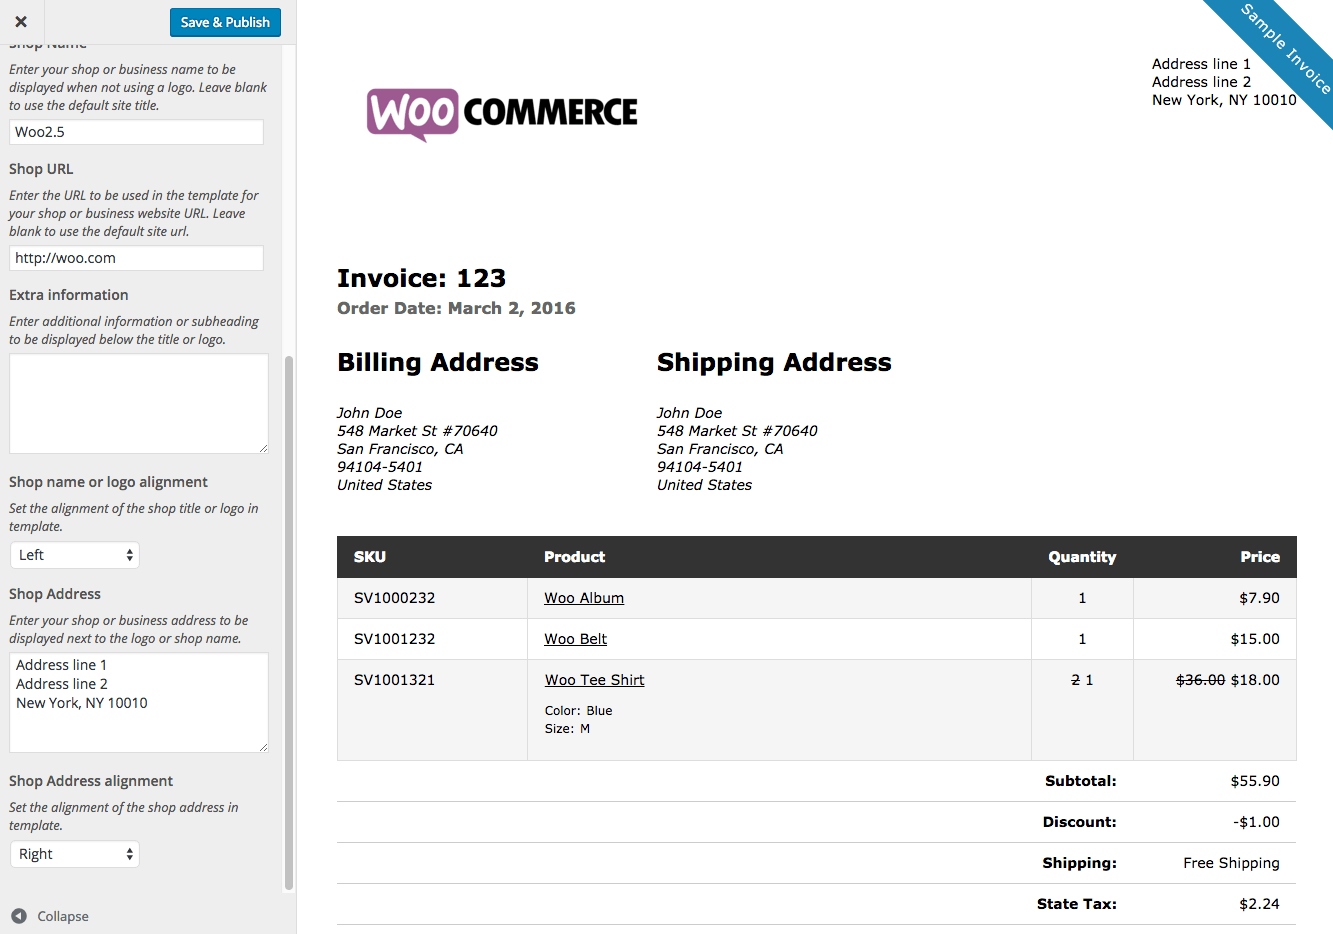 Usdgus  Remarkable Print Invoices Amp Packing Lists  Woocommerce With Great Woocommerce Print Invoices  Packing Lists Customizer With Appealing Invoice Sample Also Blank Invoice In Addition Free Invoice Software And Invoice Asap As Well As How To Write An Invoice Additionally Car Invoice Prices From Woocommercecom With Usdgus  Great Print Invoices Amp Packing Lists  Woocommerce With Appealing Woocommerce Print Invoices  Packing Lists Customizer And Remarkable Invoice Sample Also Blank Invoice In Addition Free Invoice Software From Woocommercecom